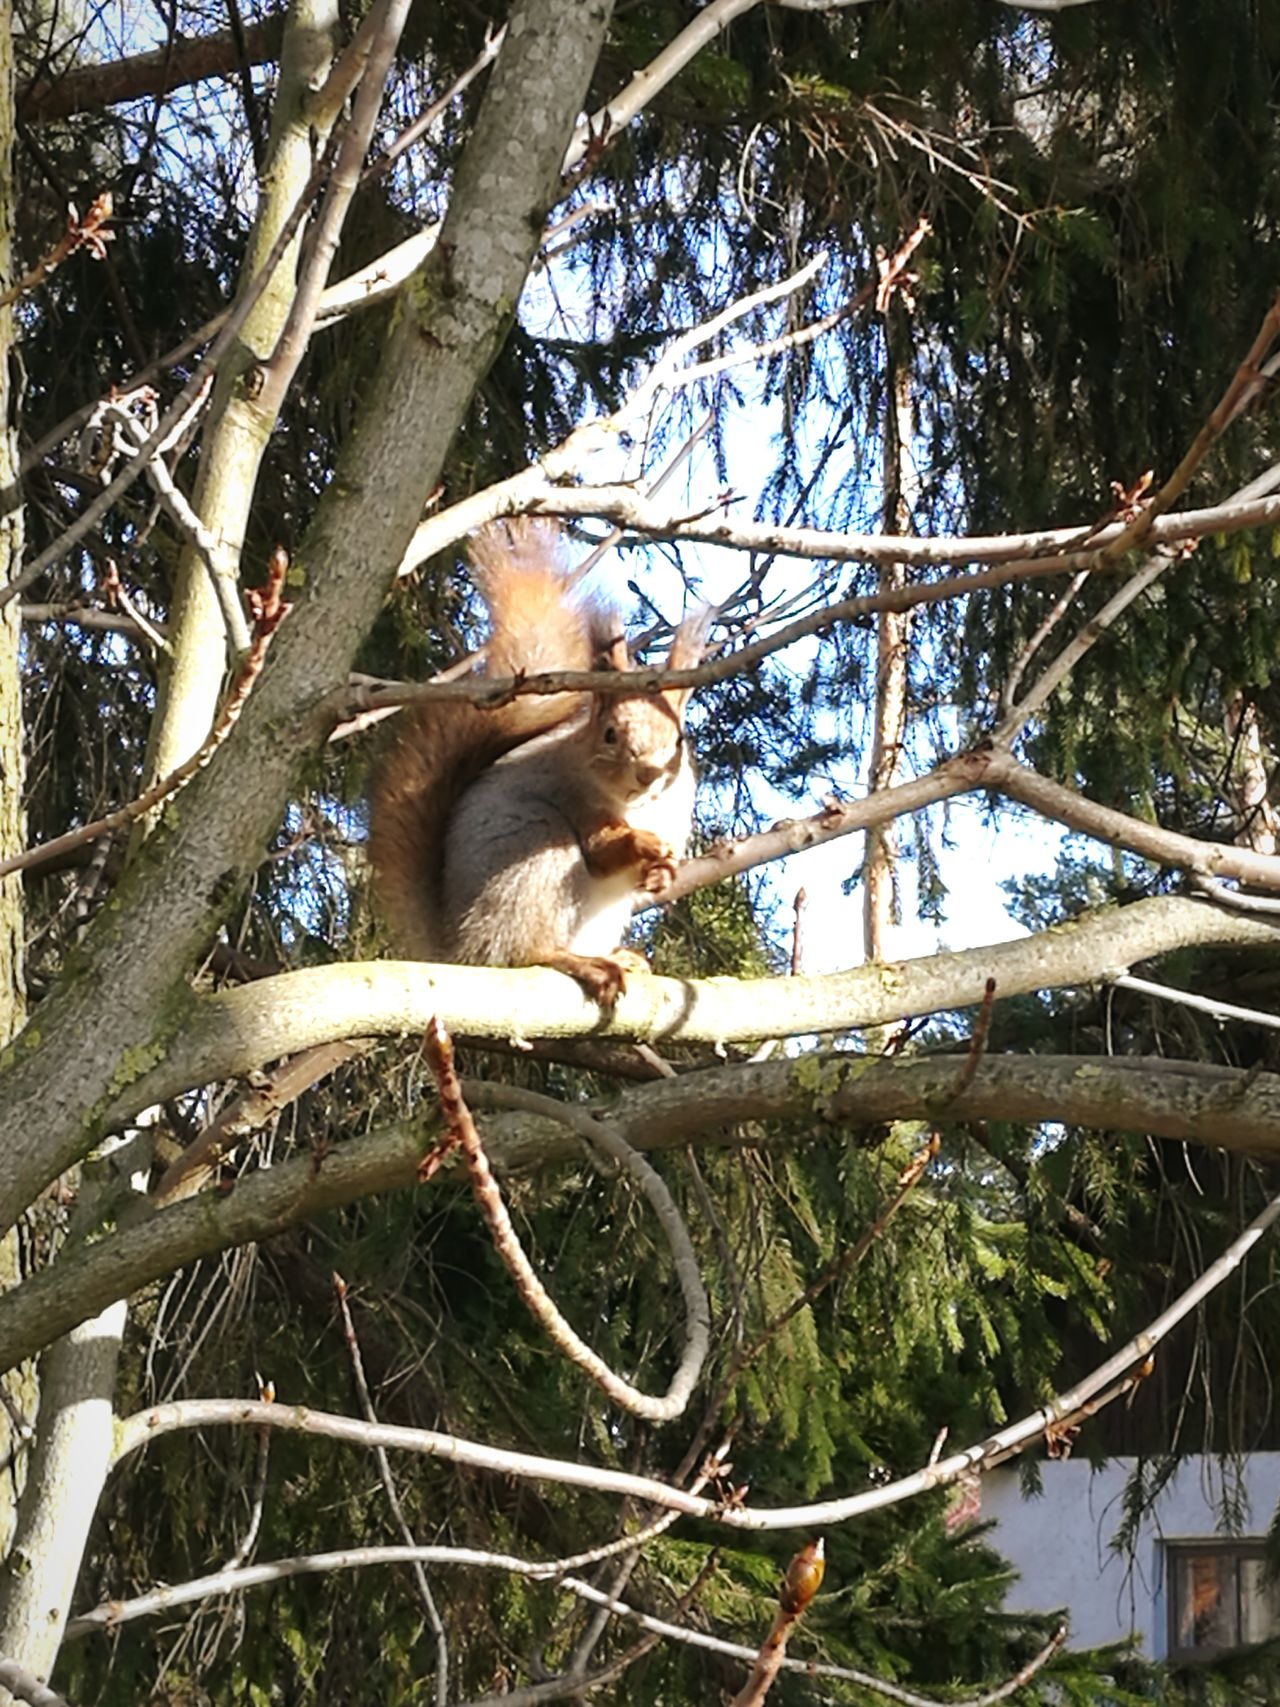 One Animal Animal Themes Tree Low Angle View No People Nature Branch Ape Outdoors Day Squirrel Wazzup Urban Lifestyle Spring